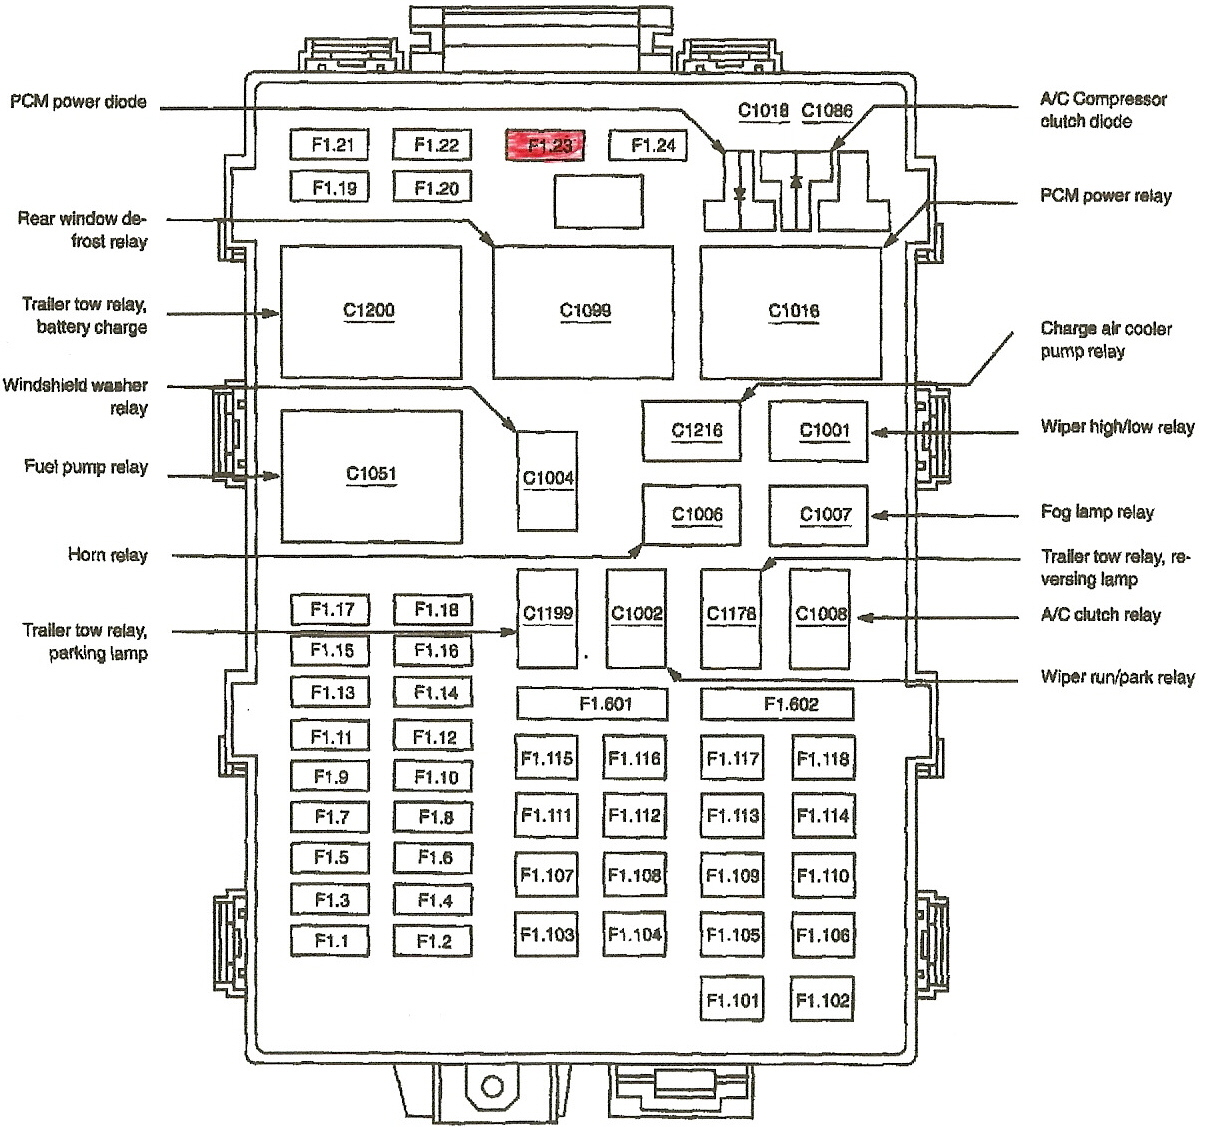 hight resolution of 2000 ford f150 4 6 fuse diagram wiring diagram forward fuse box 99 ford f 150 v6